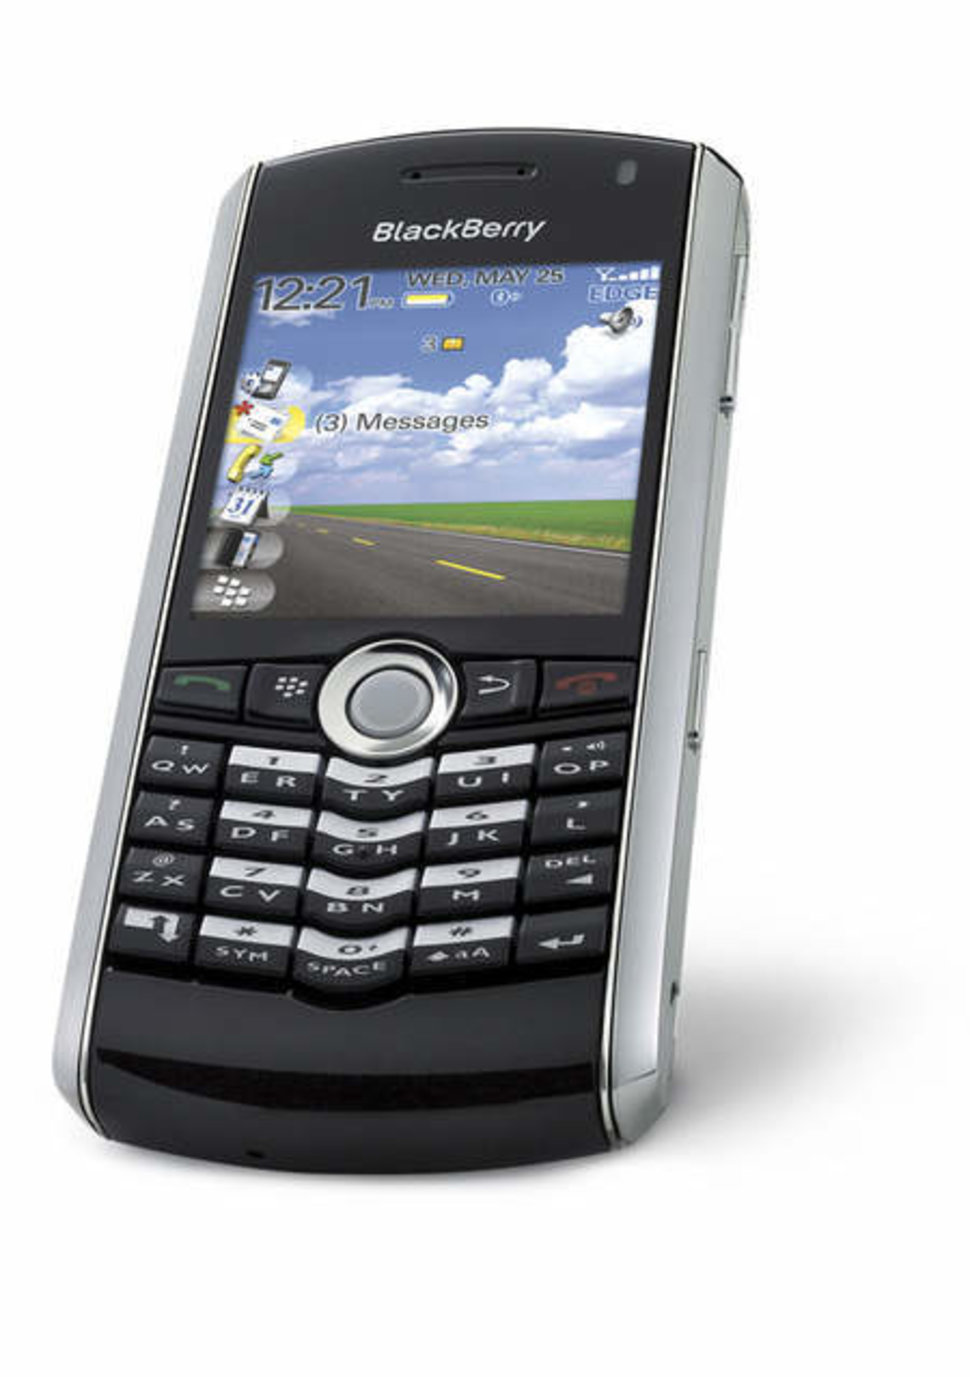 Blackberry pearl 8100 mobile phones images blackberry pearl 8100 - Blackberry Pearl 8100 Smartphone Image 1